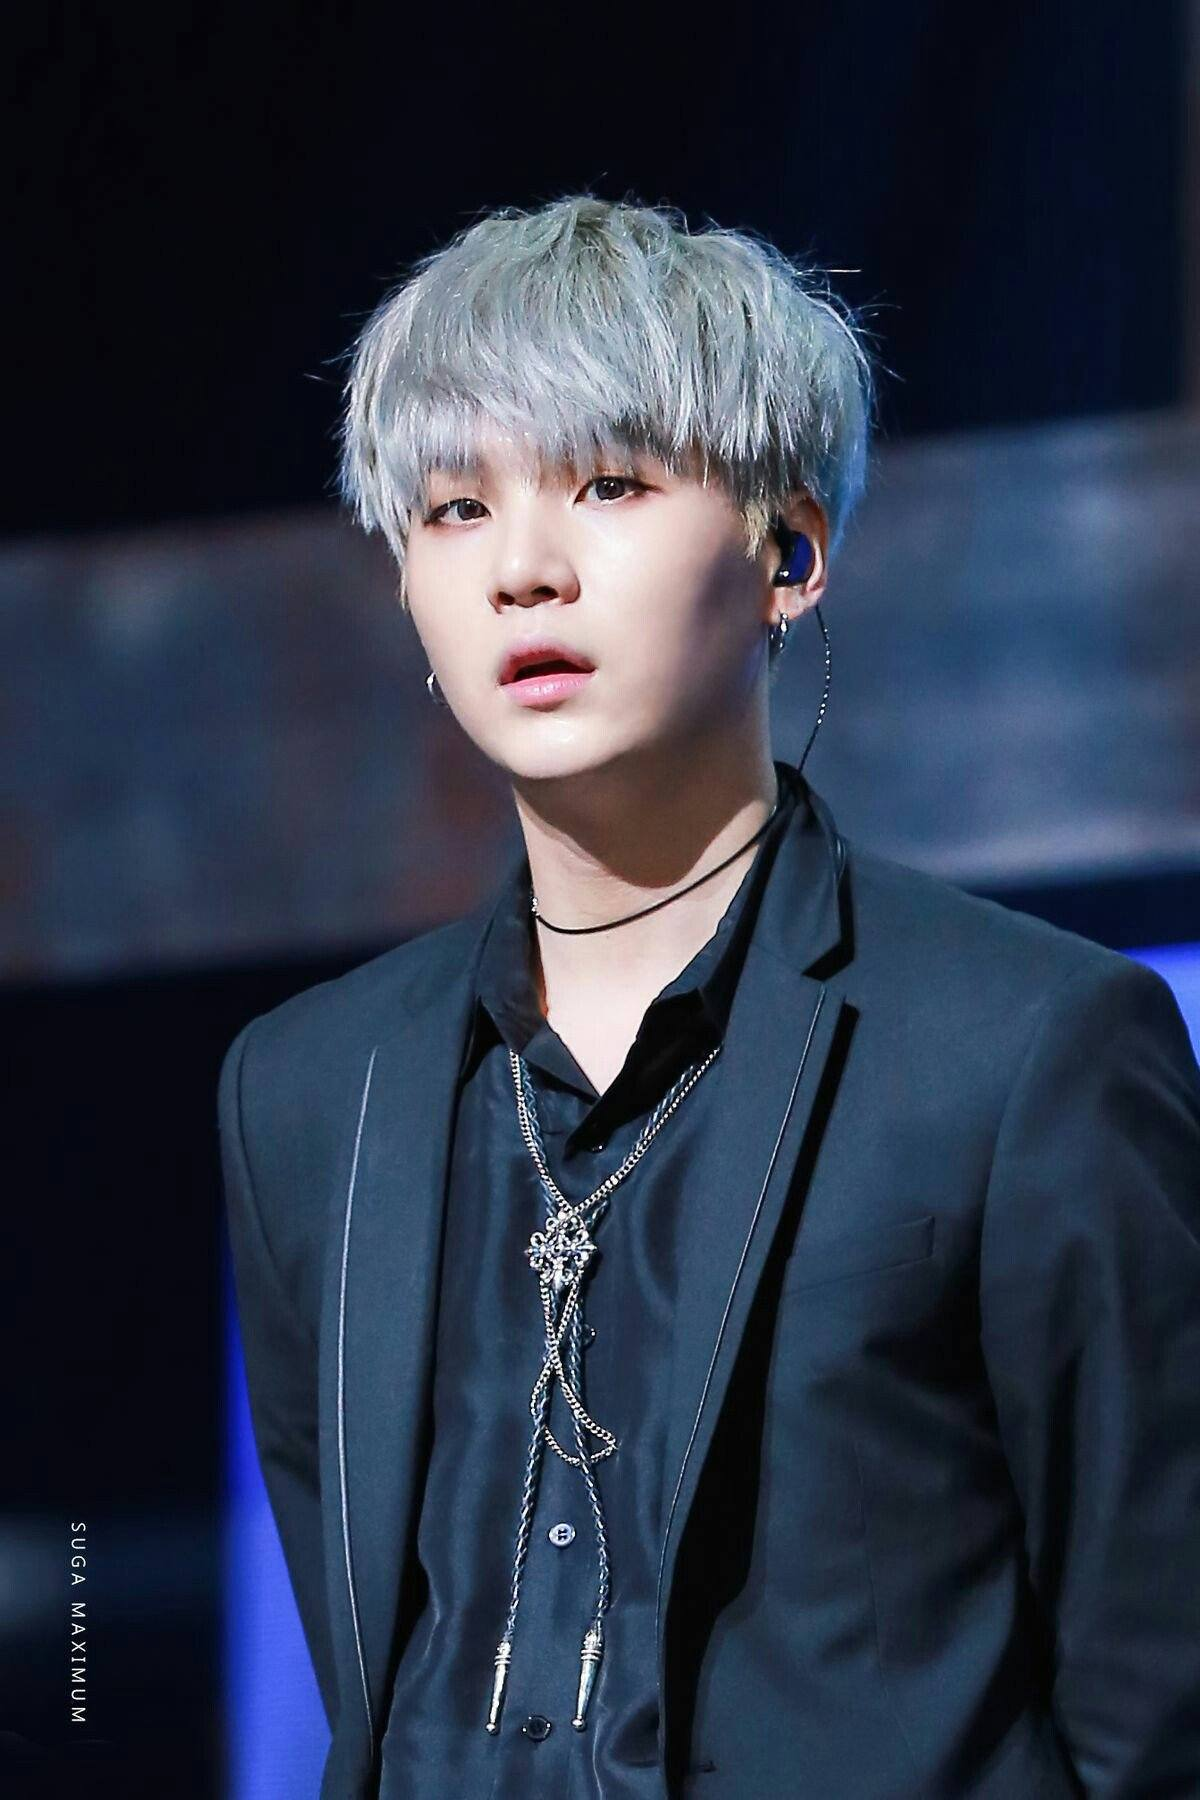 Bts Suga Struggles With Depression Over His Appearance